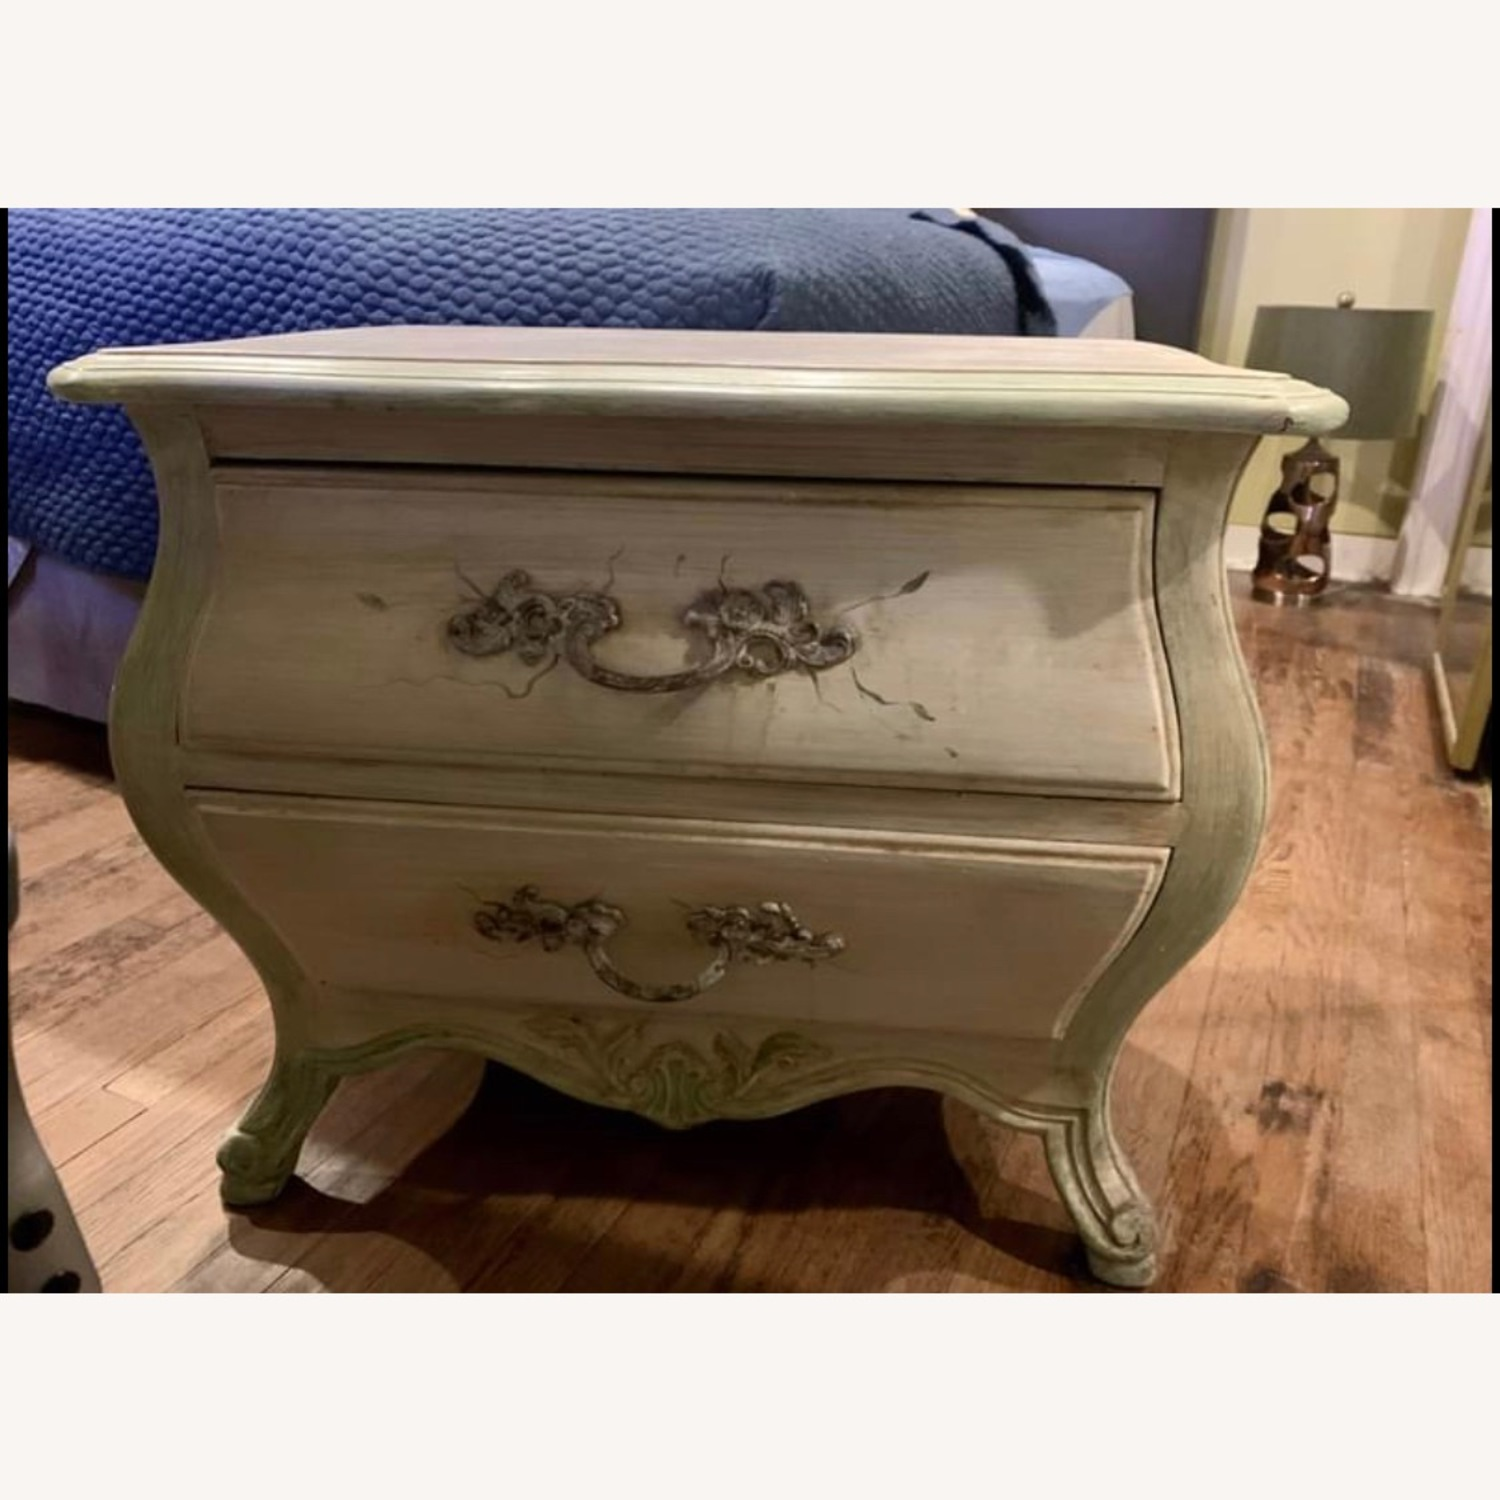 Hand Painted High Quality Nightstands - image-1